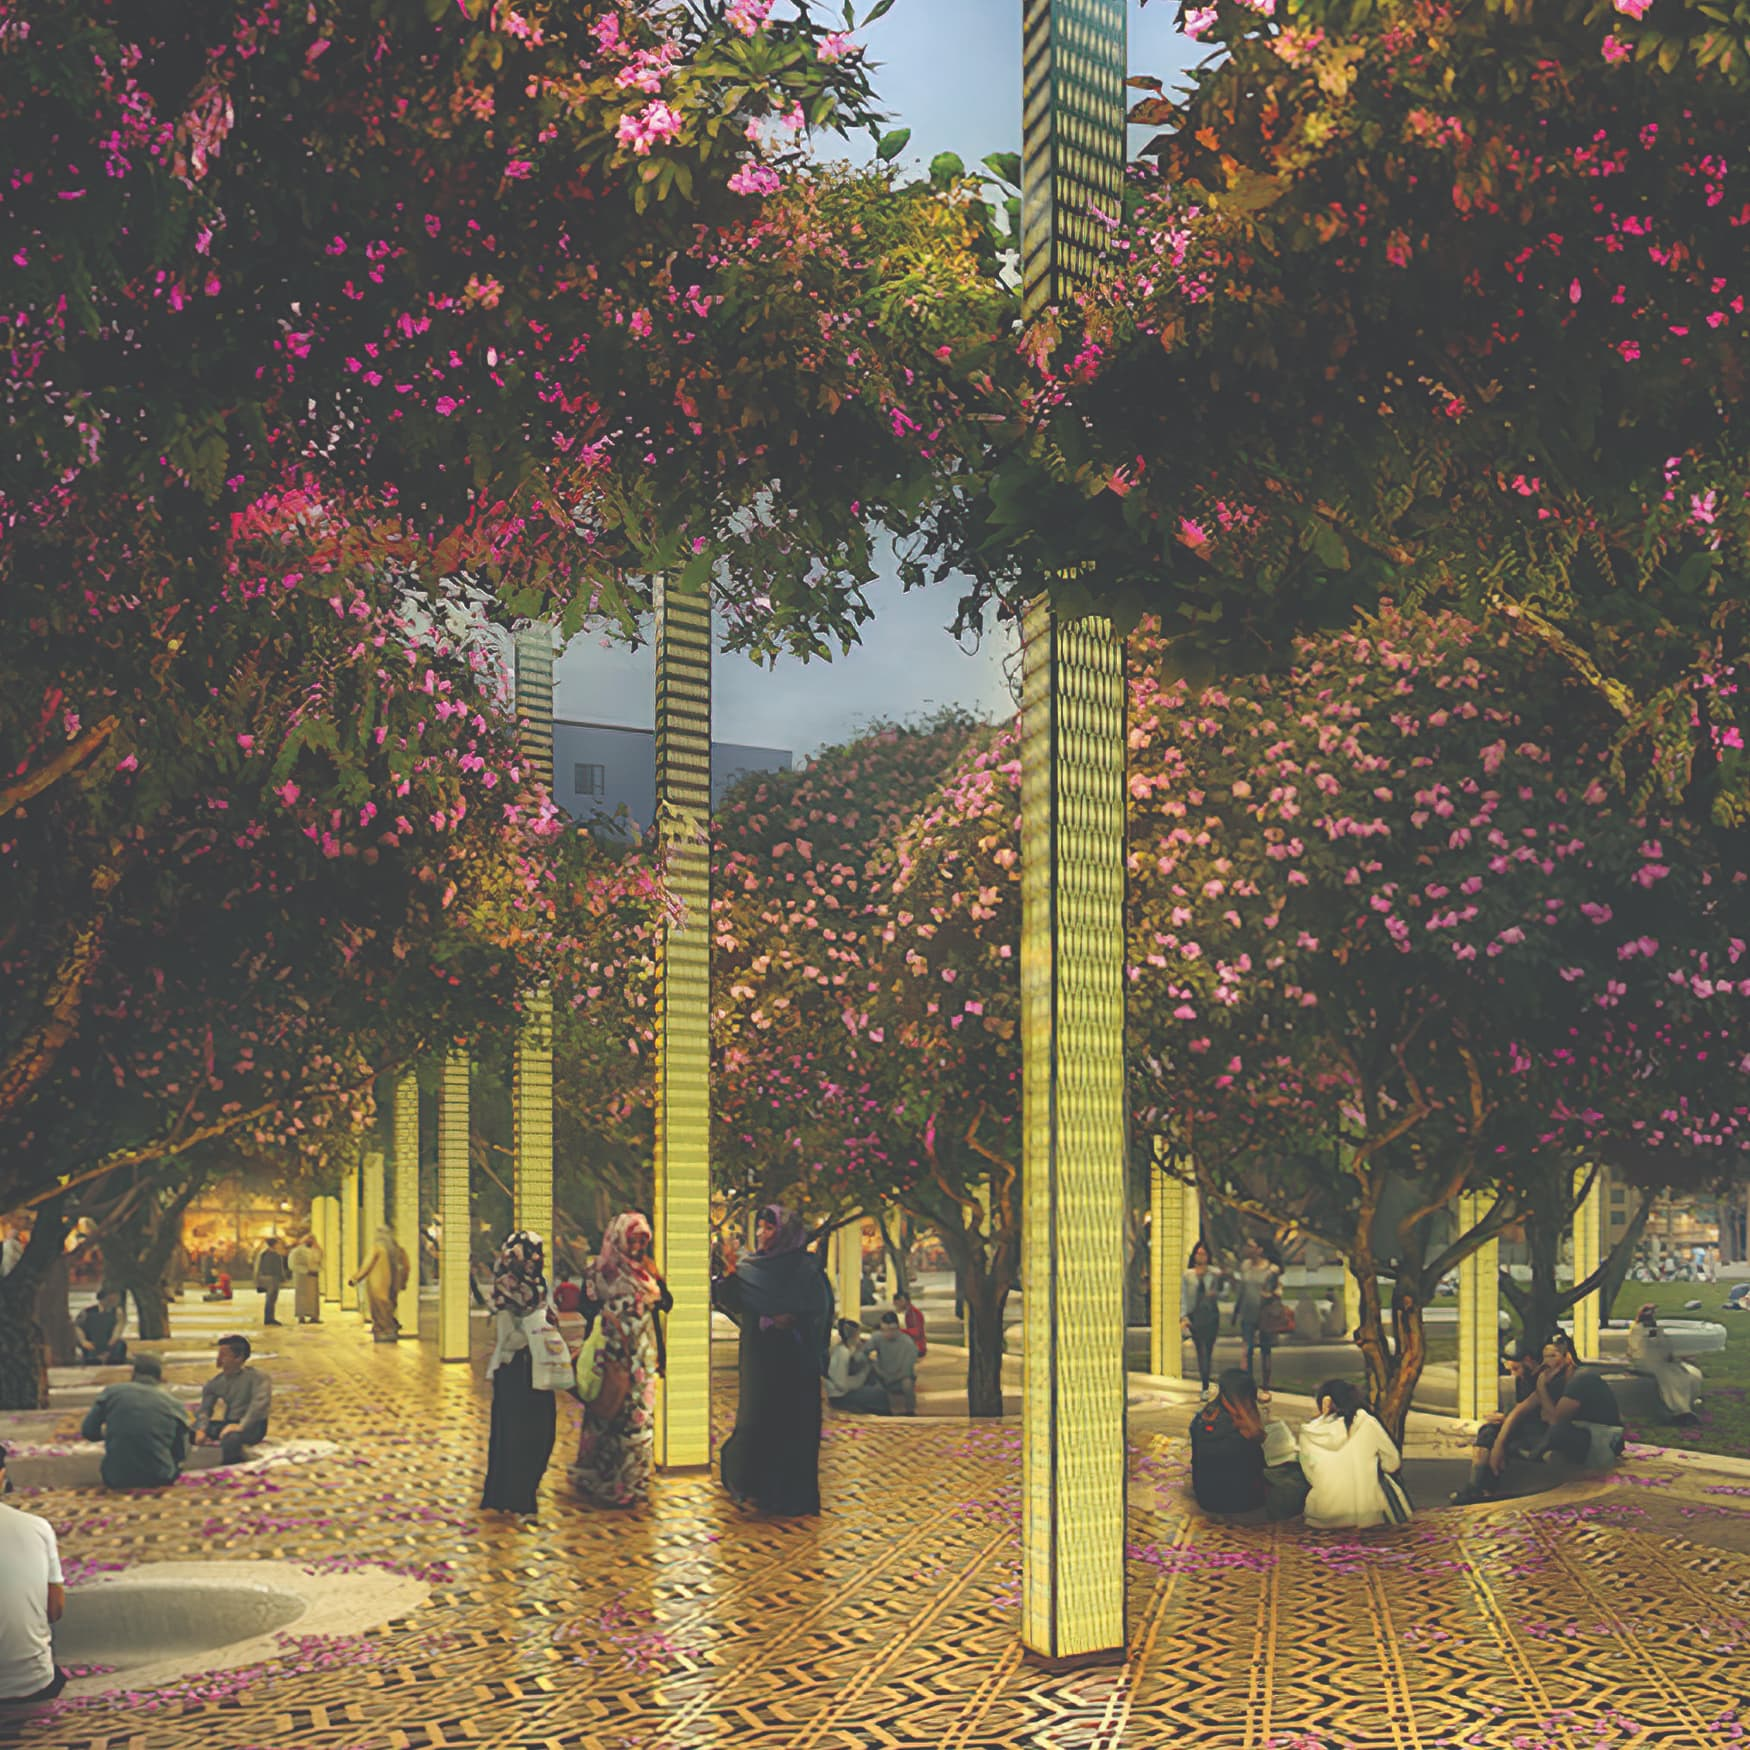 A conceptual rendering depicting a plaza area with illuminated totem elements.